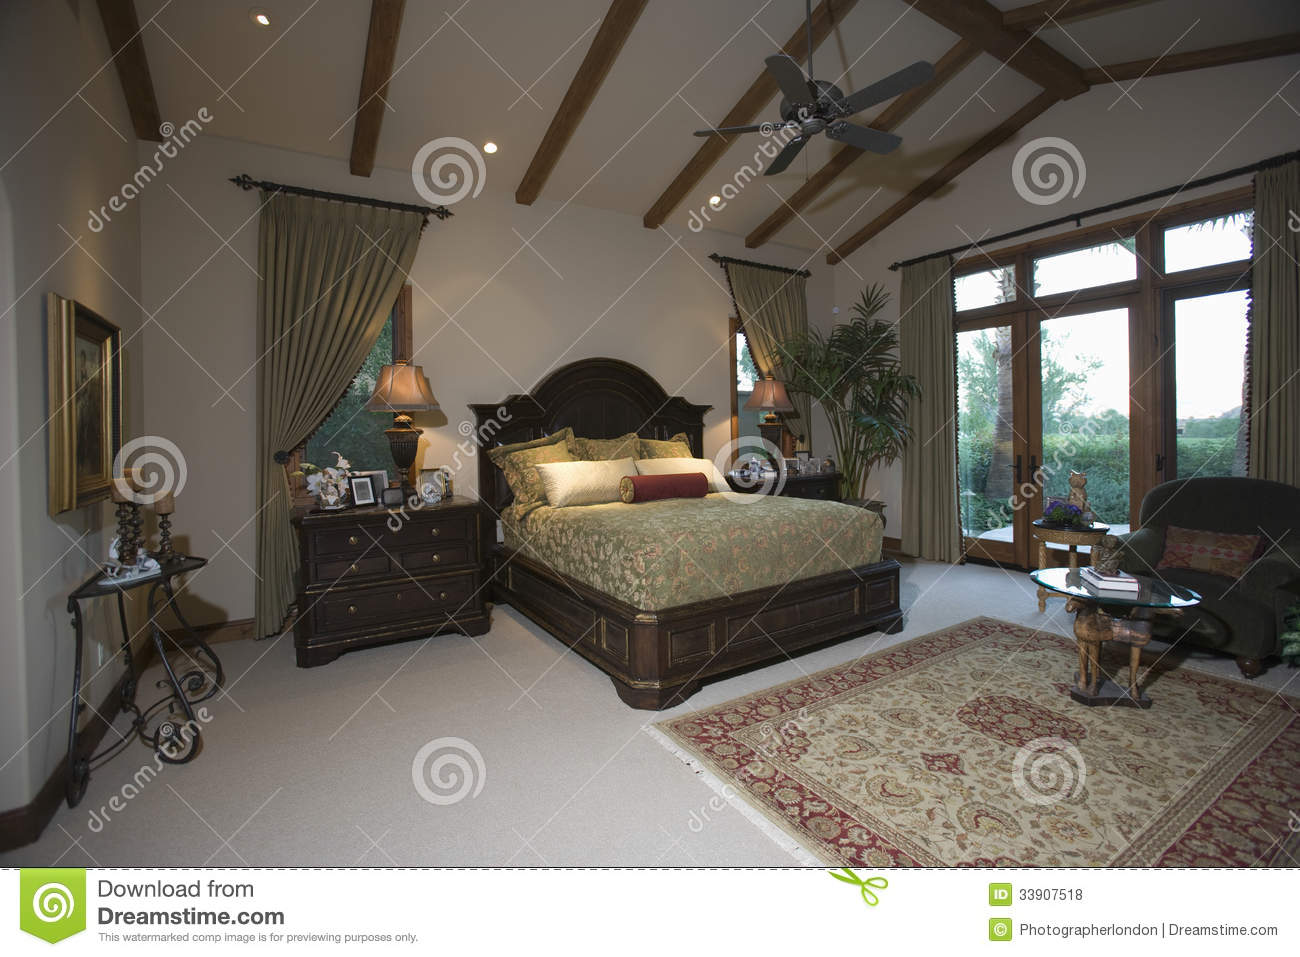 Bedroom With Beamed Ceiling And Patio Doors Stock Photo